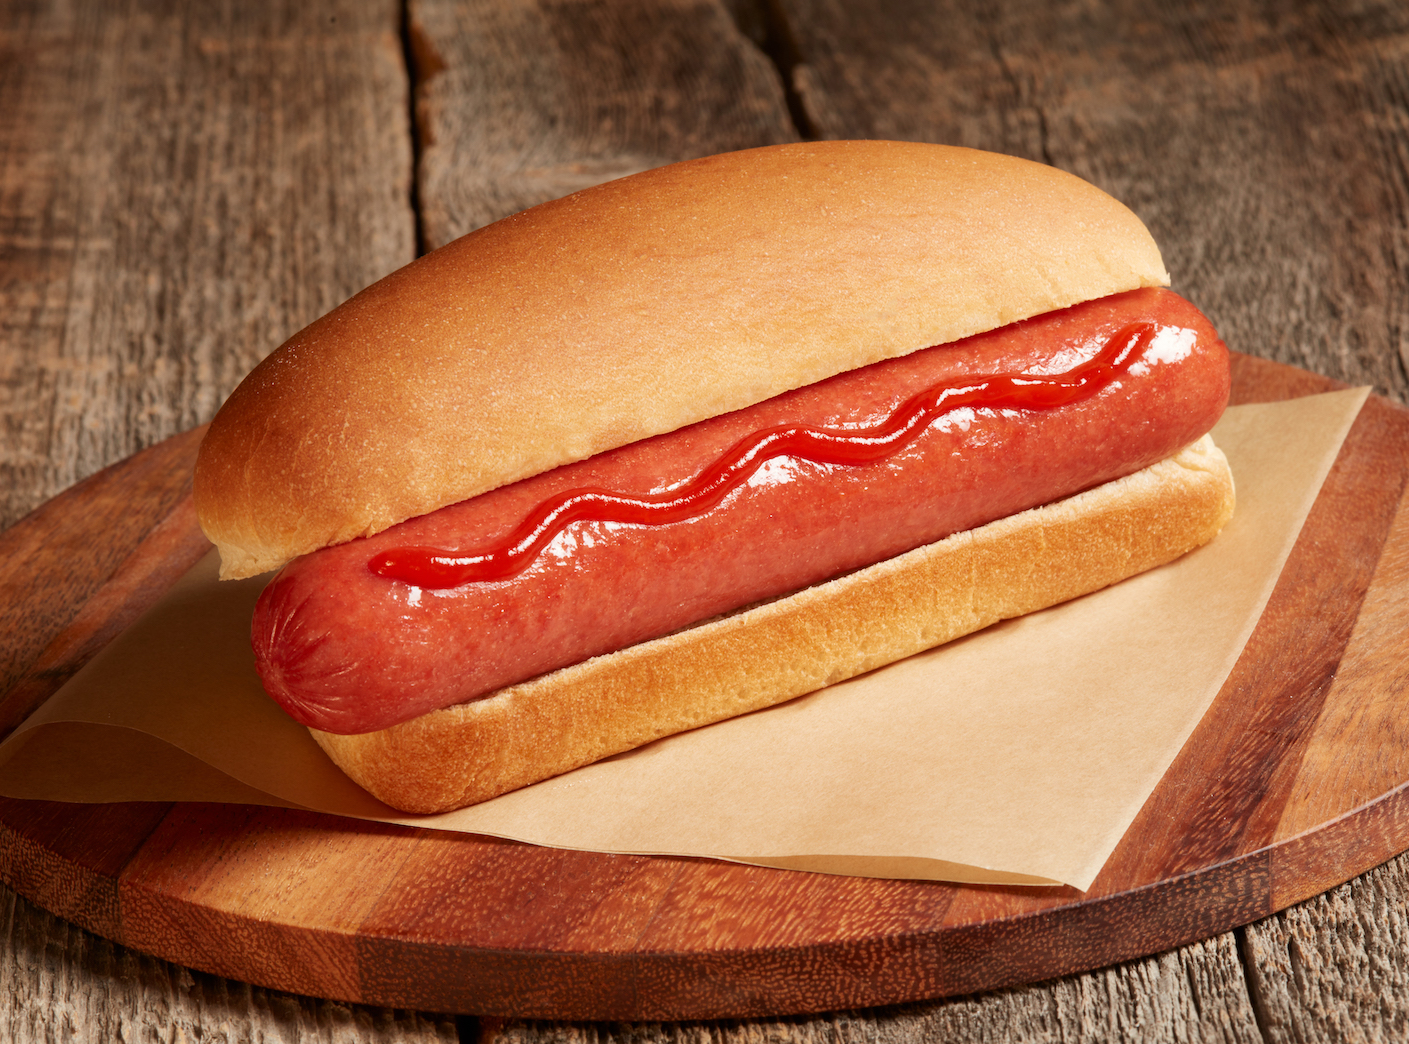 skinless Beef Hot Dog from Johnsonville C-Store for convenience store roller grill served plain on a bun with ketchup